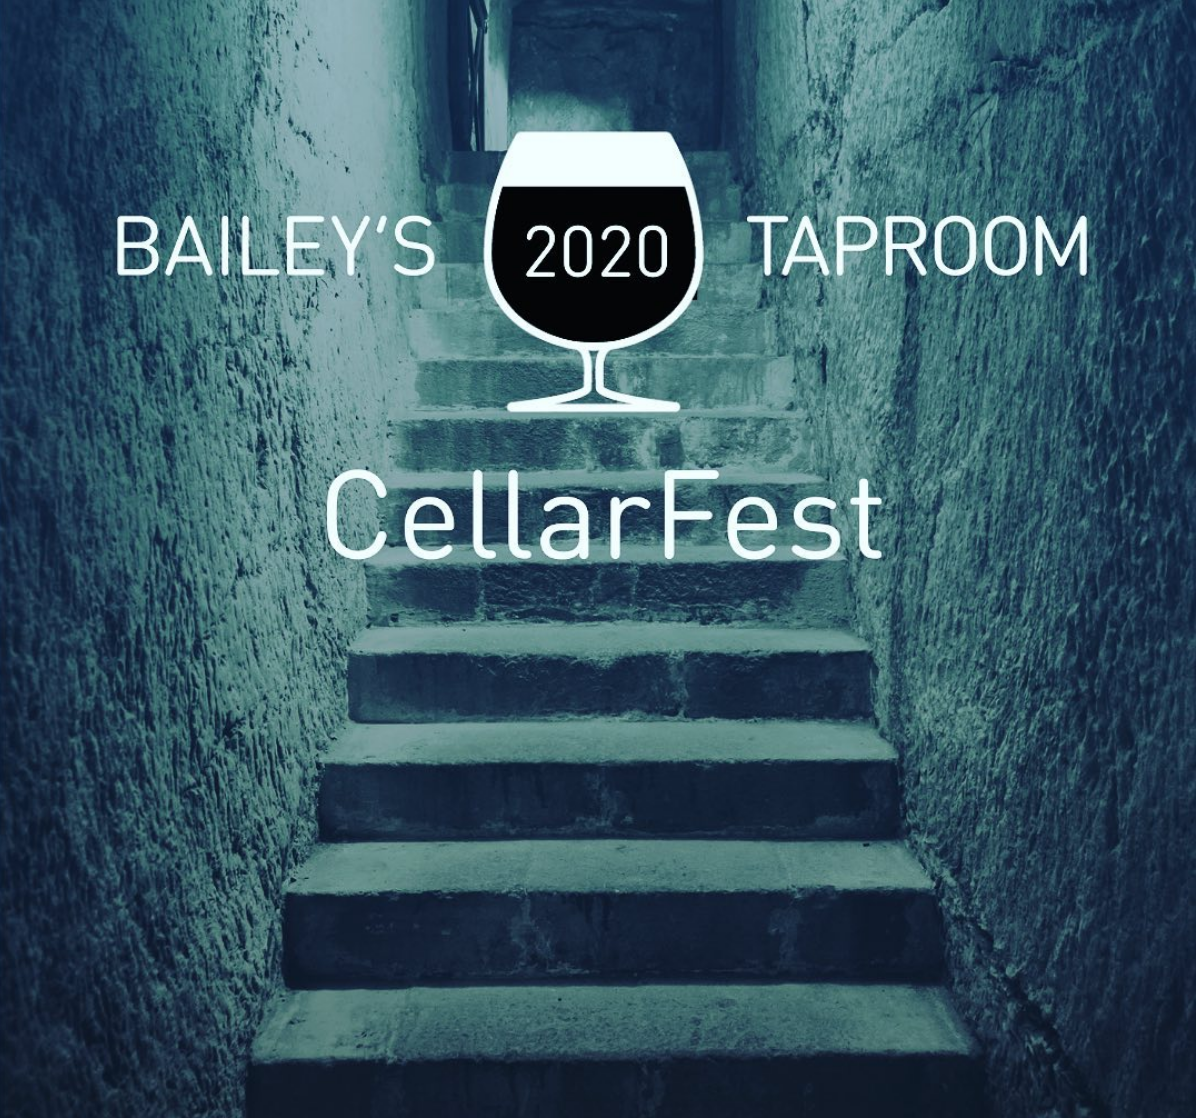 Bailey's Taproom 11th Annual CellarFest - 2020